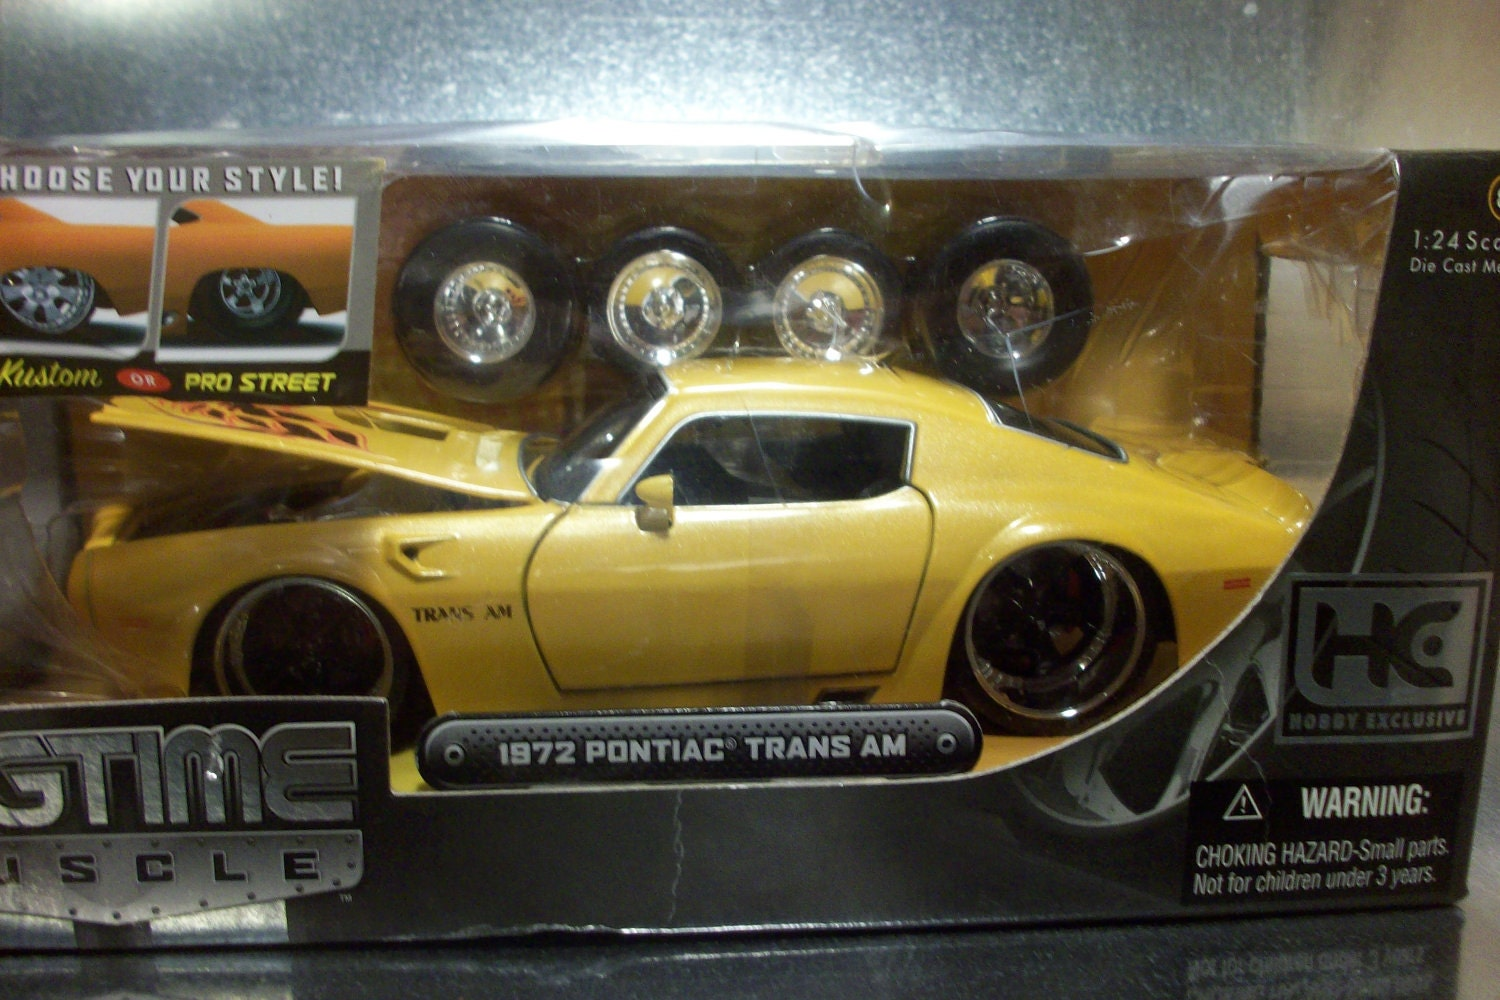 1972 Pontiac Trans AM 1:24 scale Die Cast Car Jada Toys. From RubbersRecords